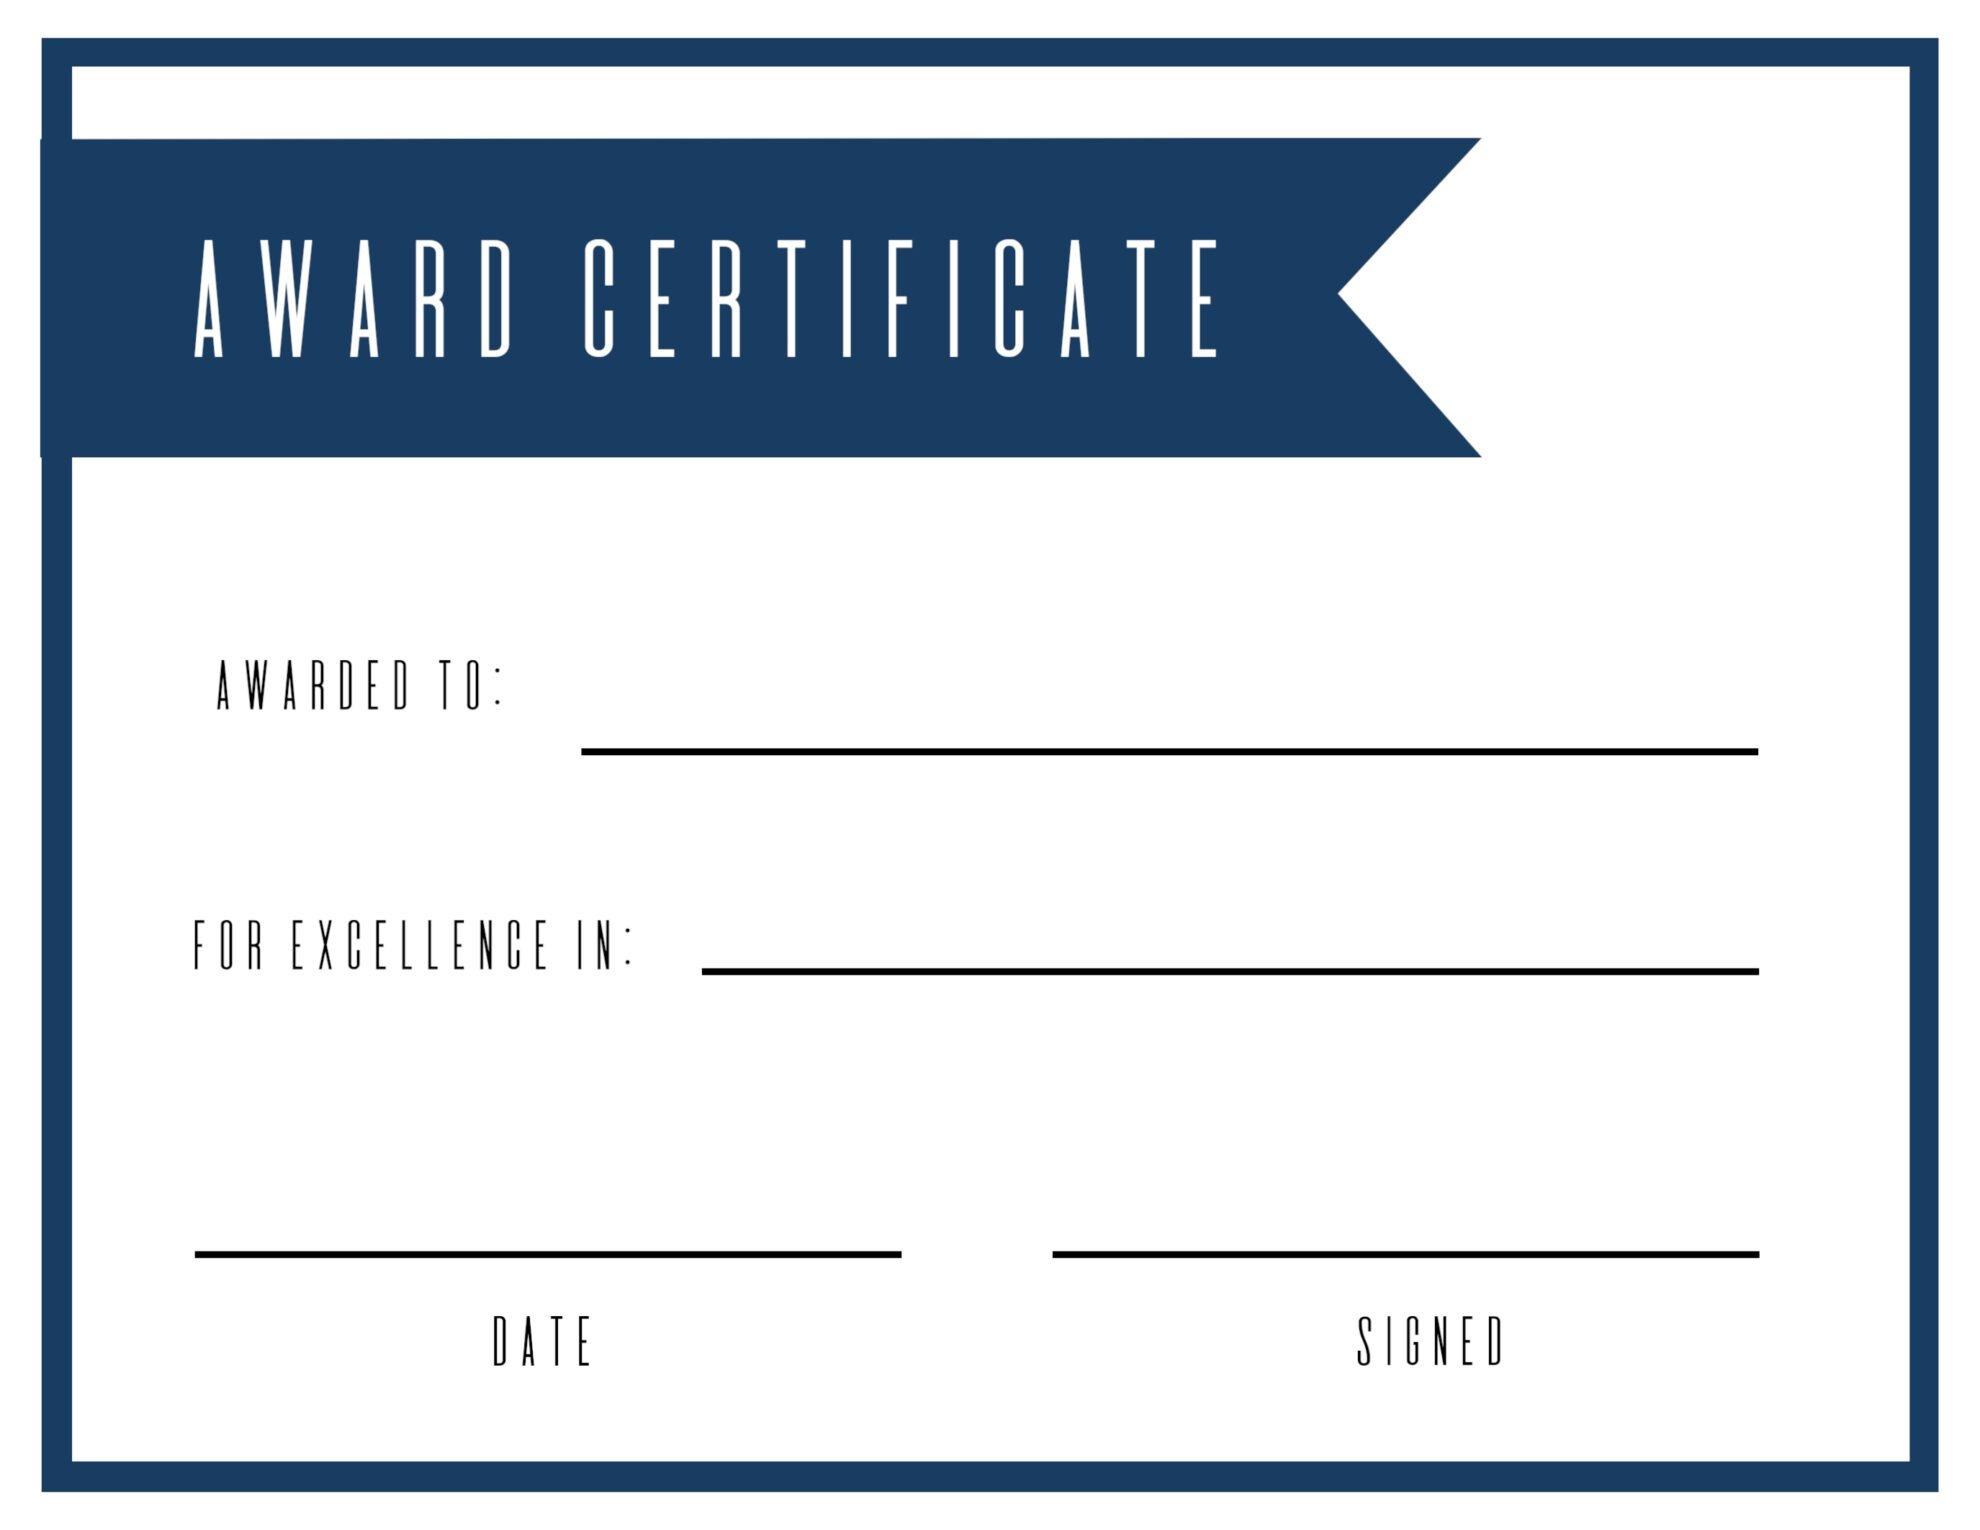 Free Printable Award Certificate Template - Paper Trail Design - Free Printable Halloween Award Certificates